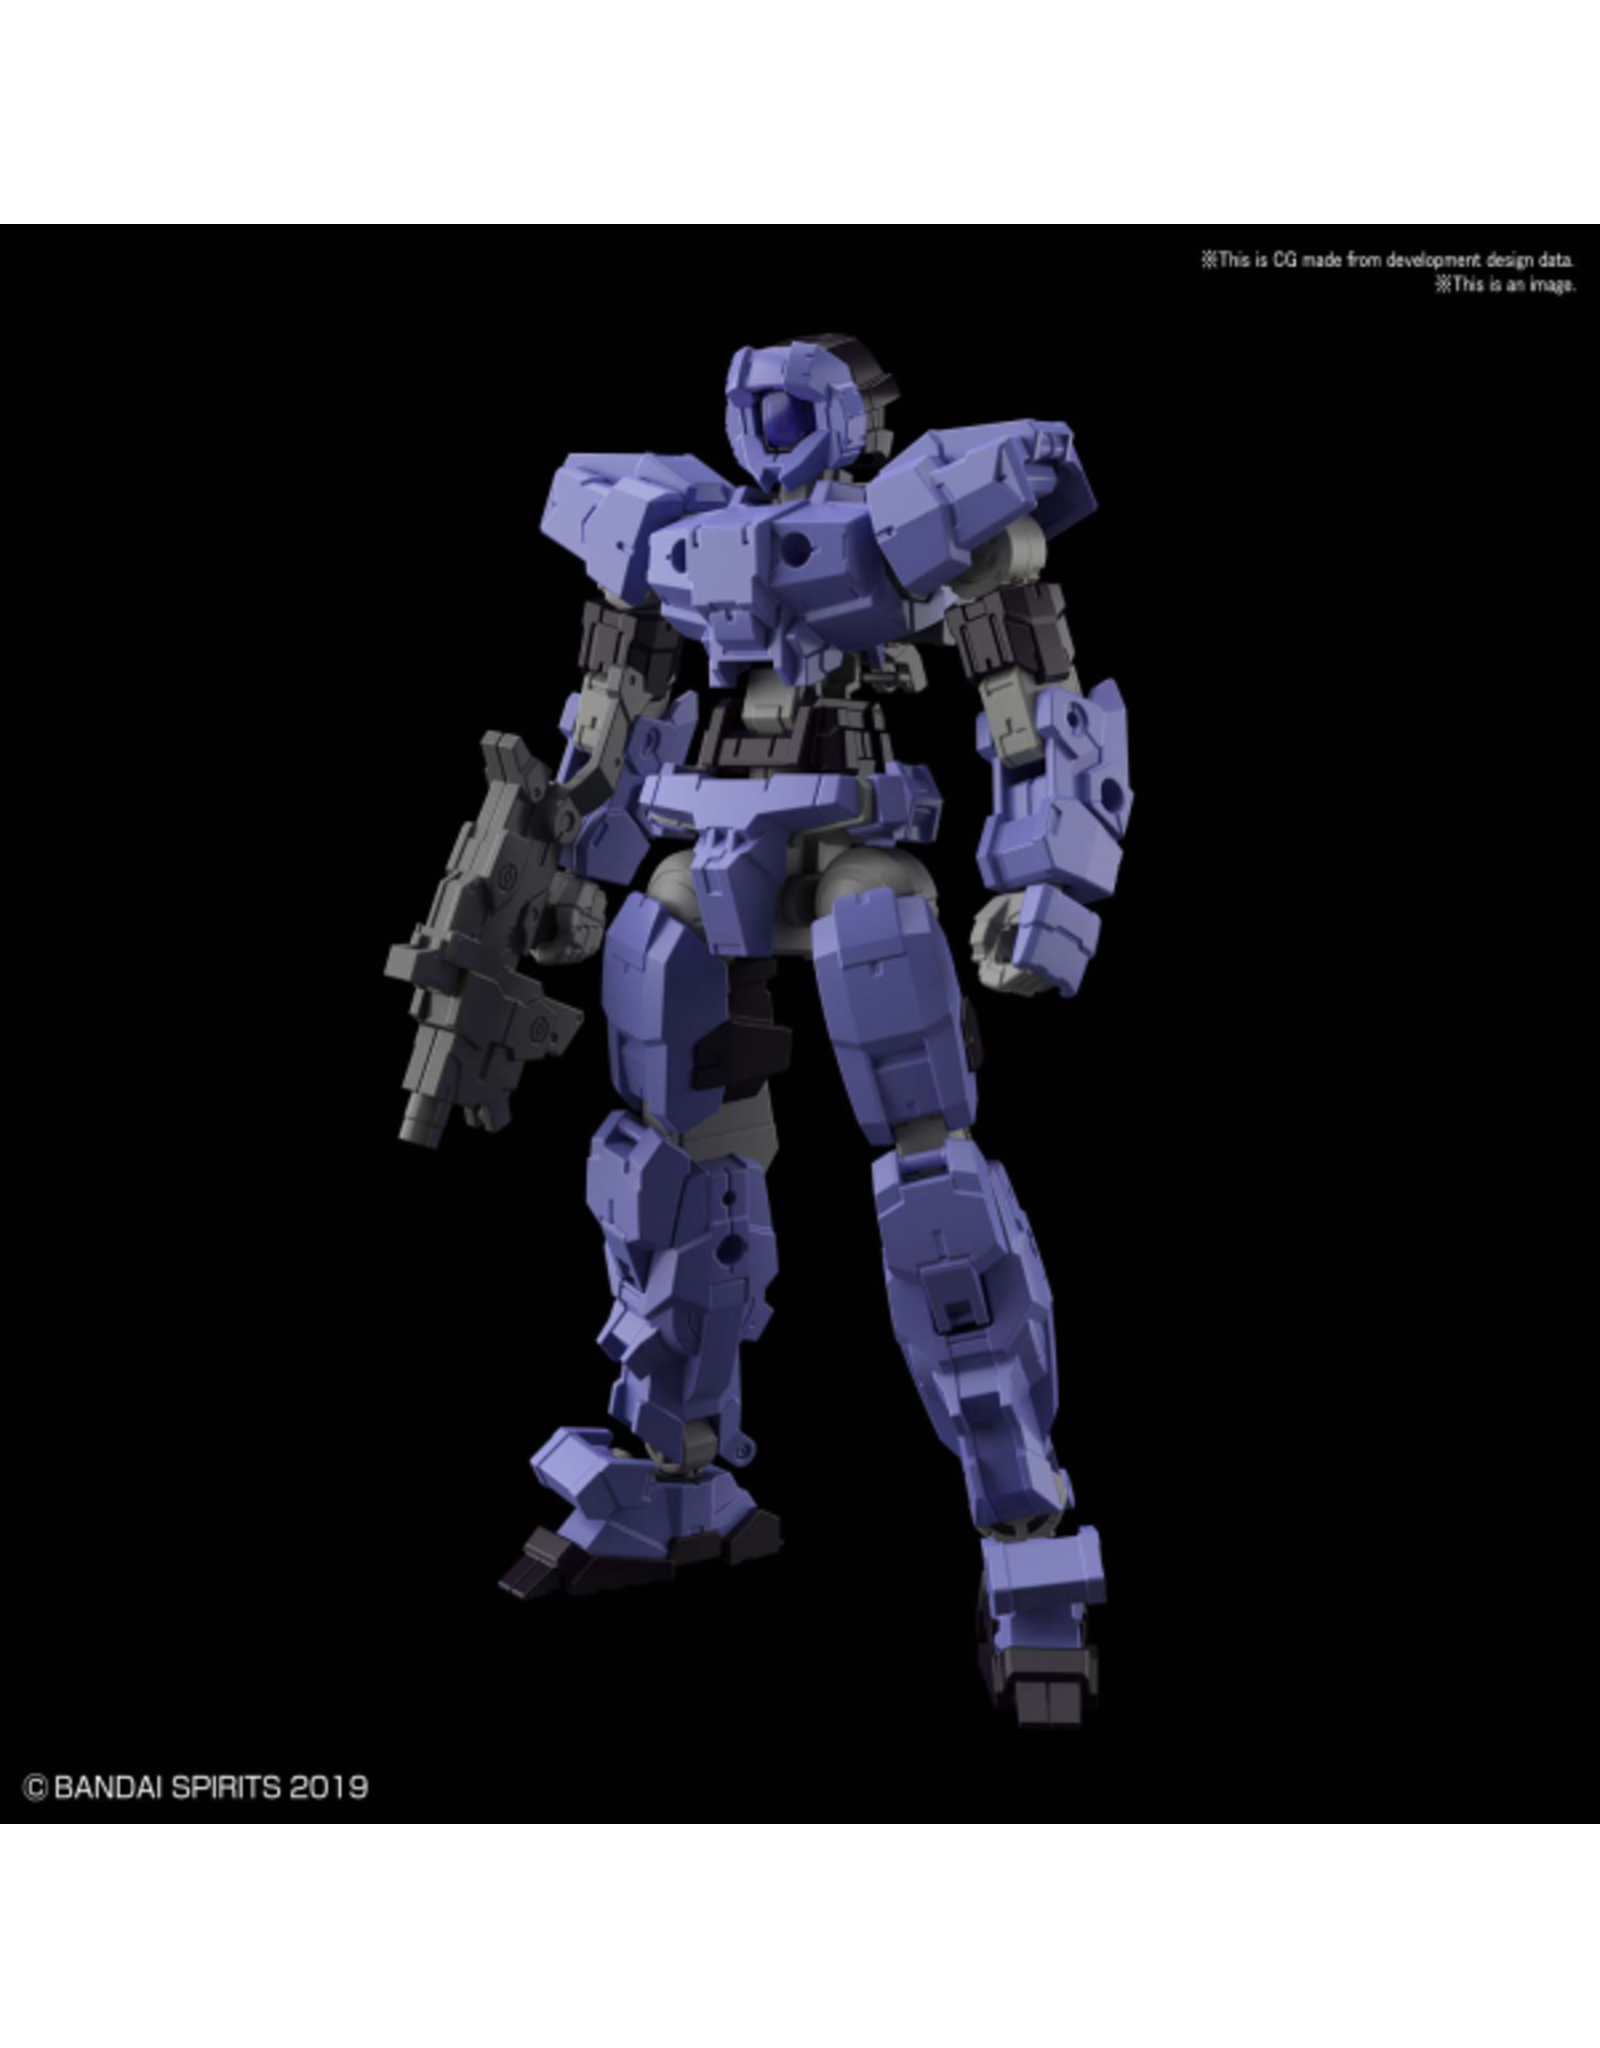 BANDAI 30MM 1/144 #17 eEXM-17 ALTO [PURPLE]